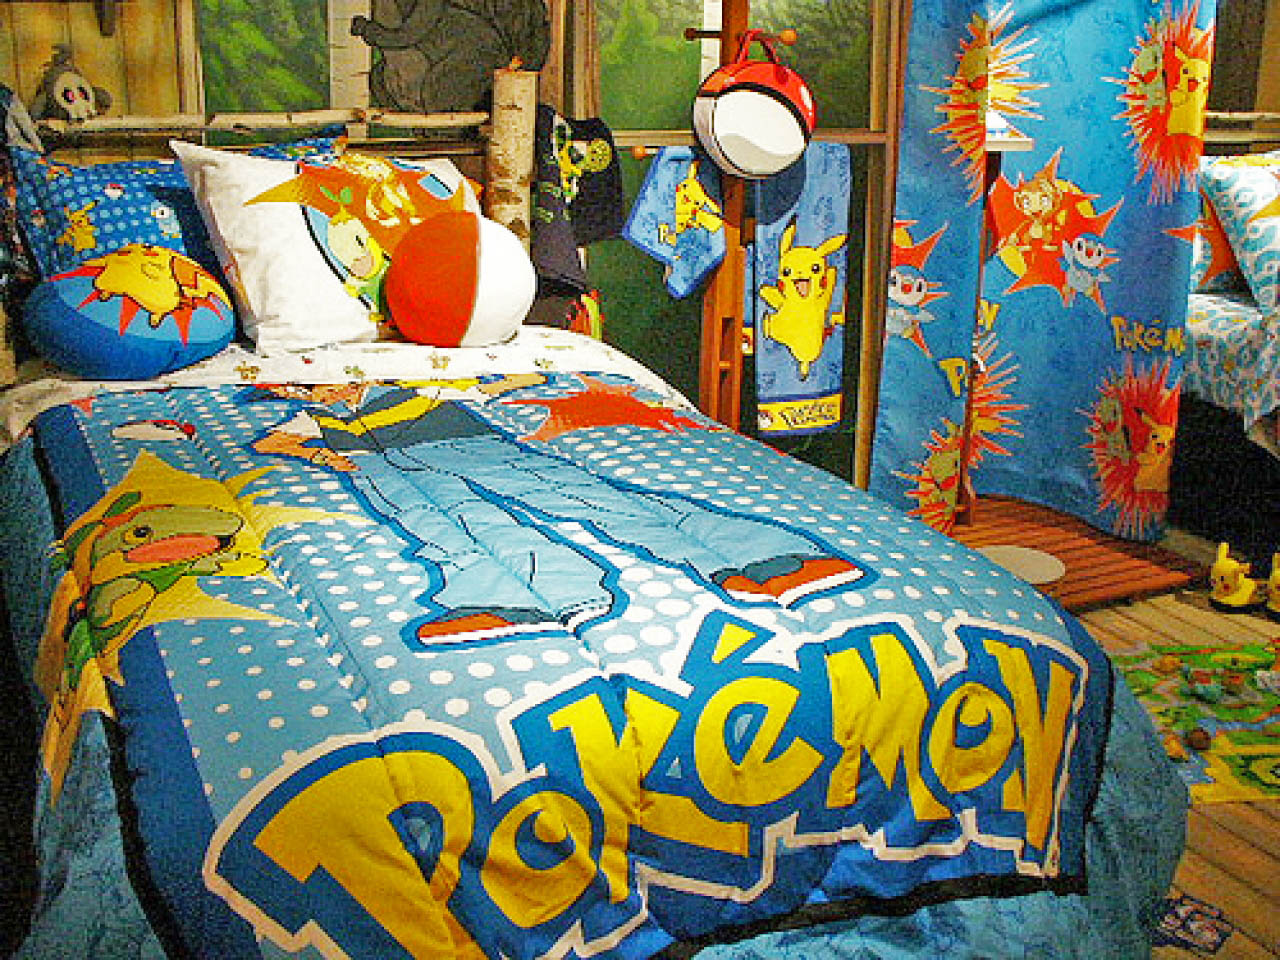 With the original Ash Ketchum, this Pokémon bed set is great for the new and original Pokémon fans.